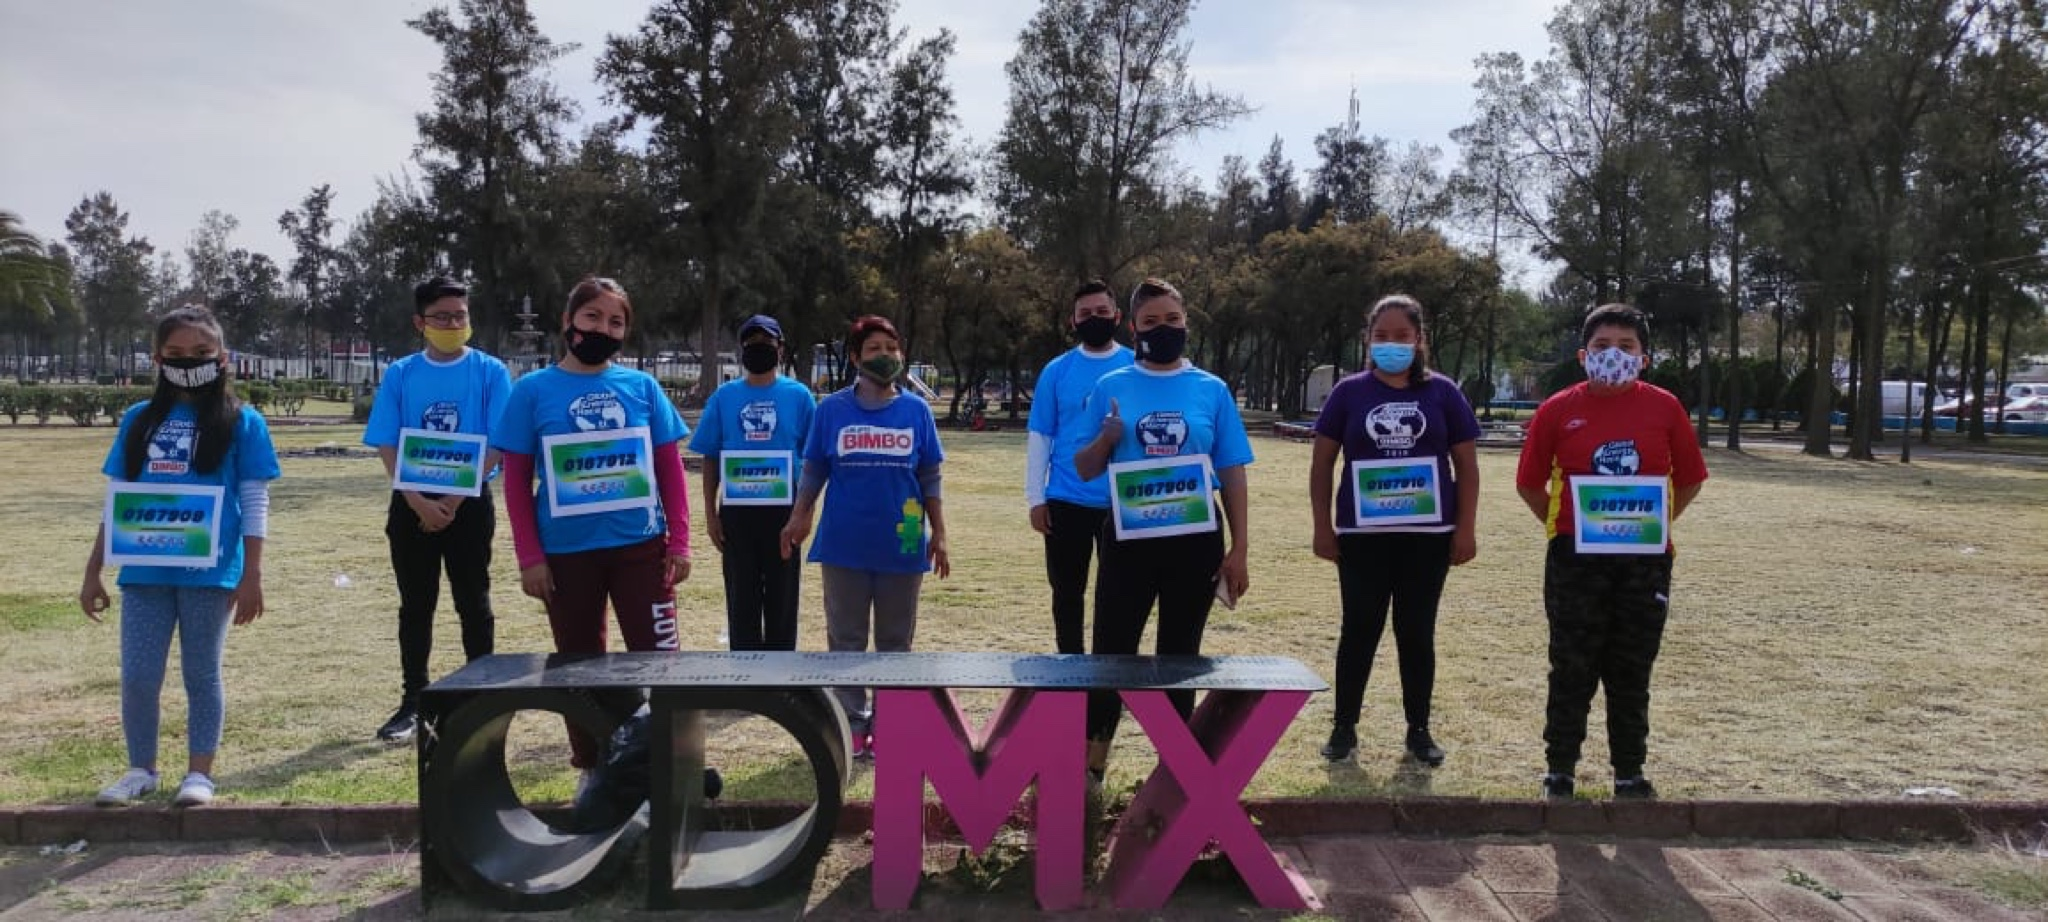 Group-of-people-running-CDMX-Largest-Donation-of-goods